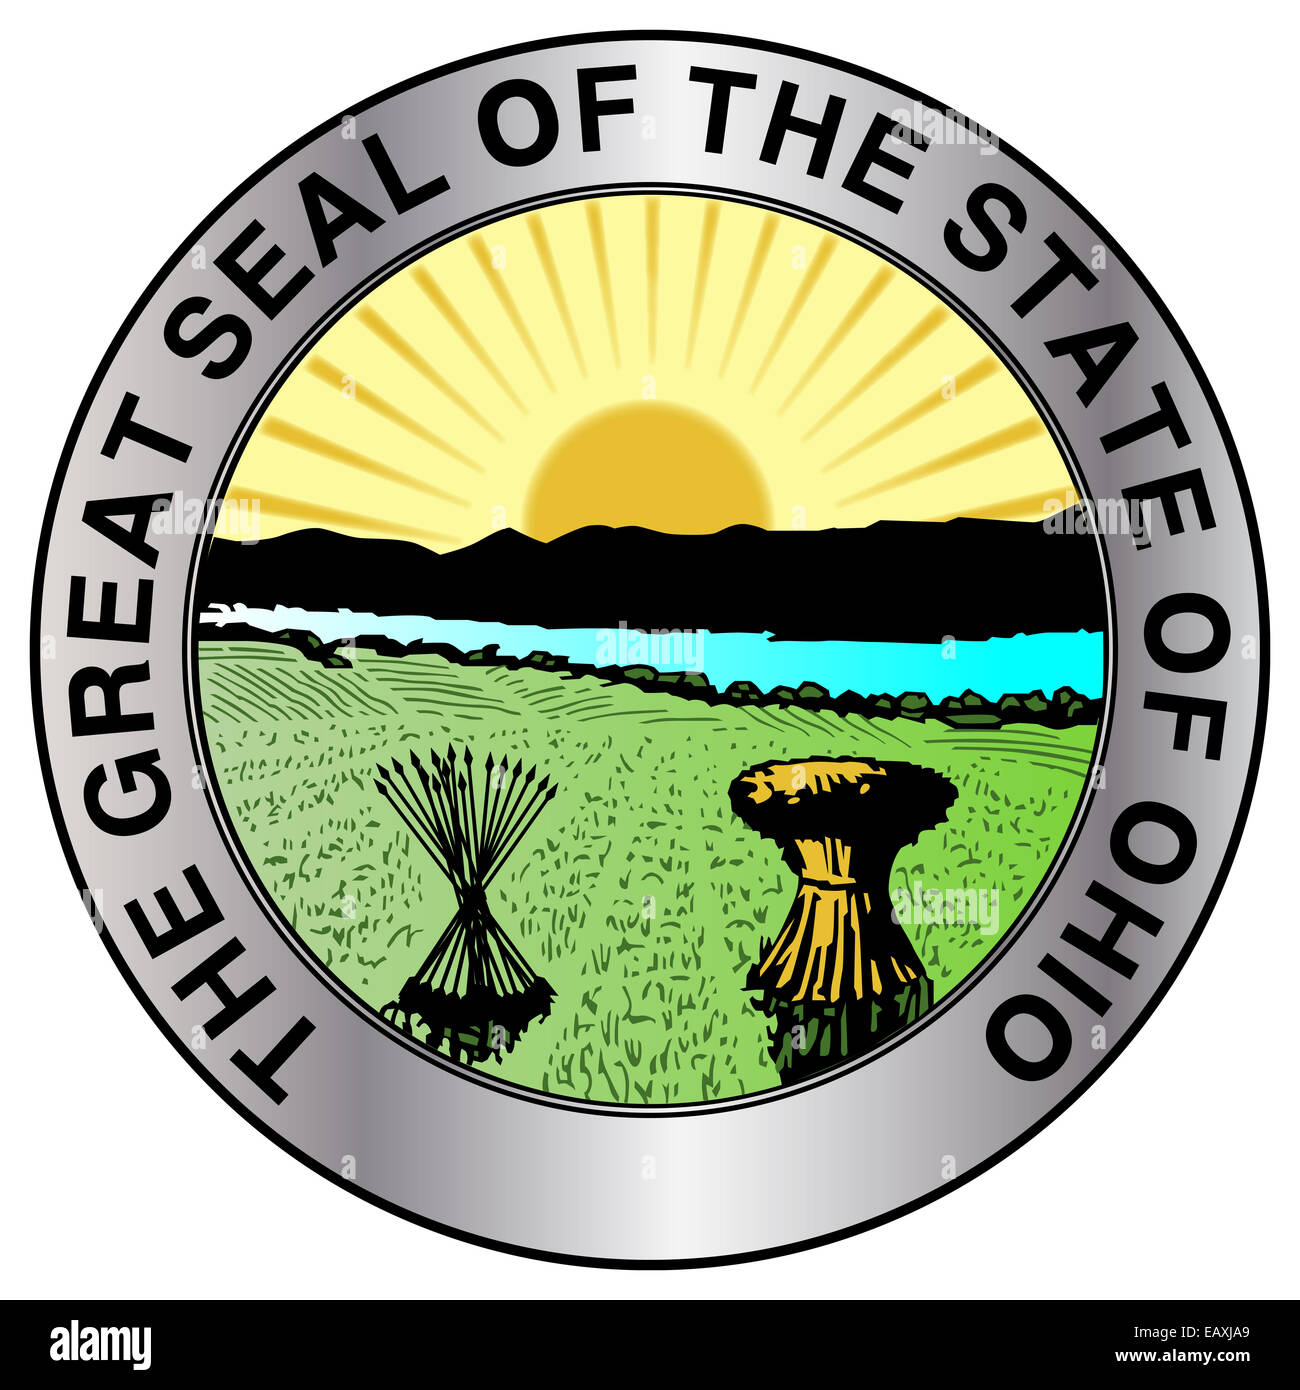 The great seal of the state of Ohio - Stock Image